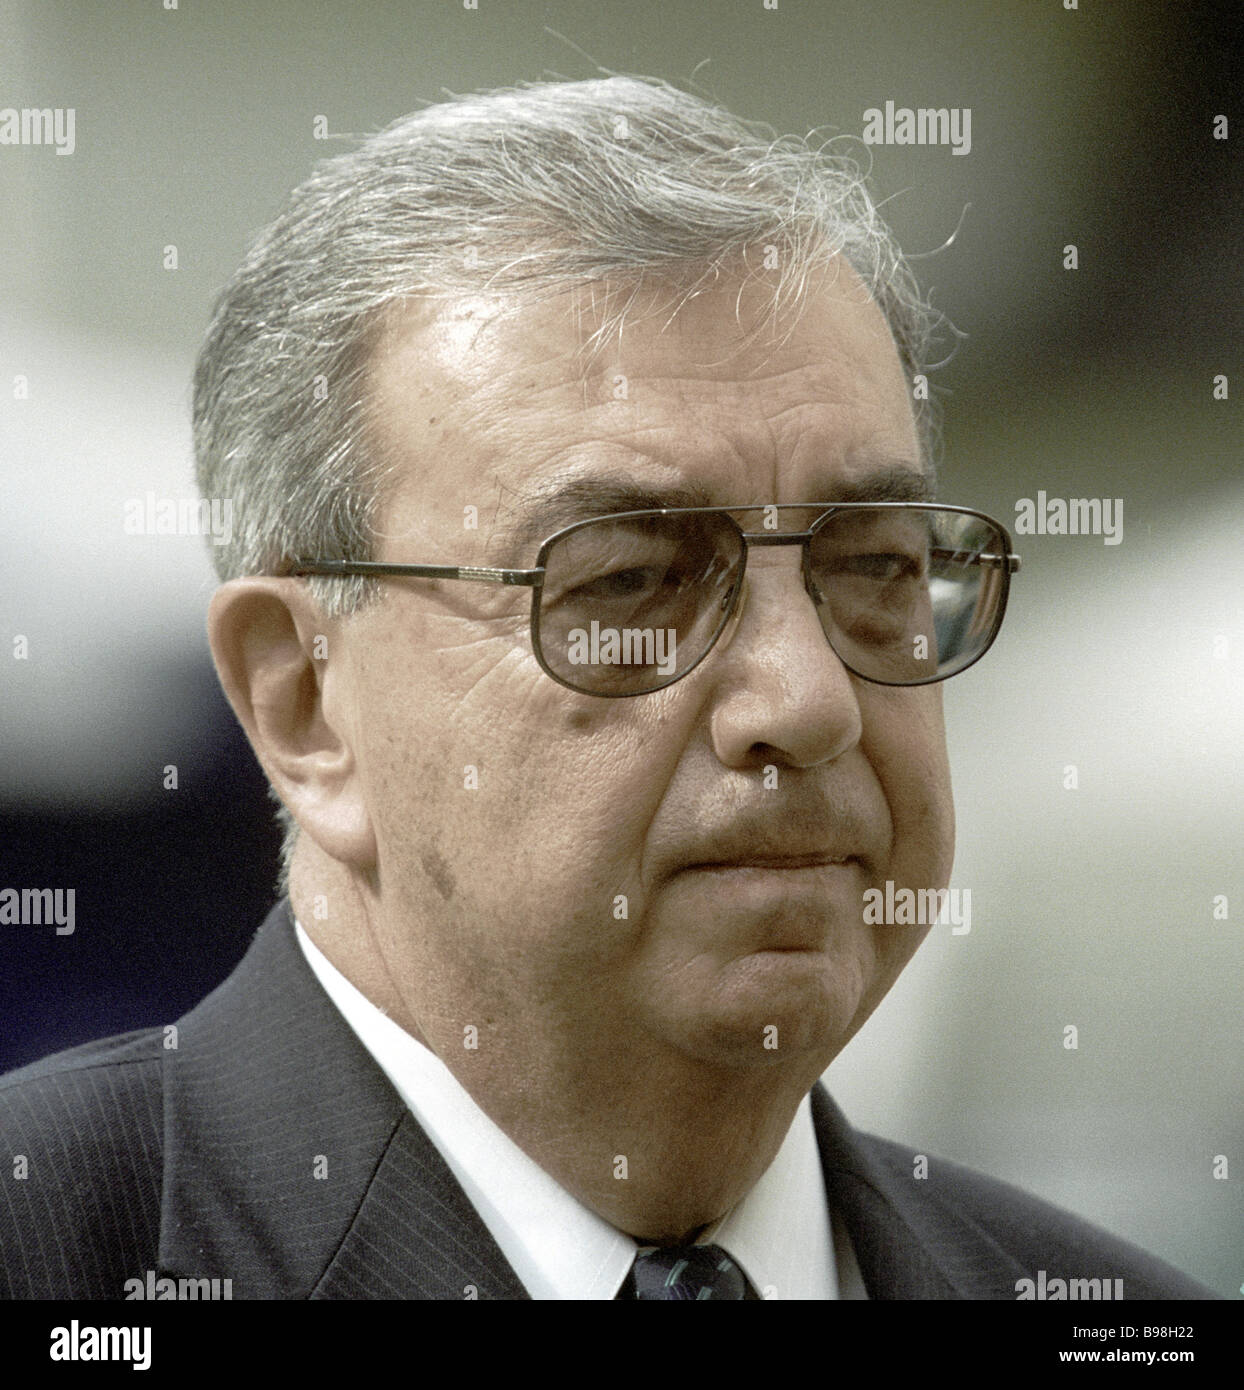 Fatherland All Russia faction leader Yevgeni Primakov - Stock Image